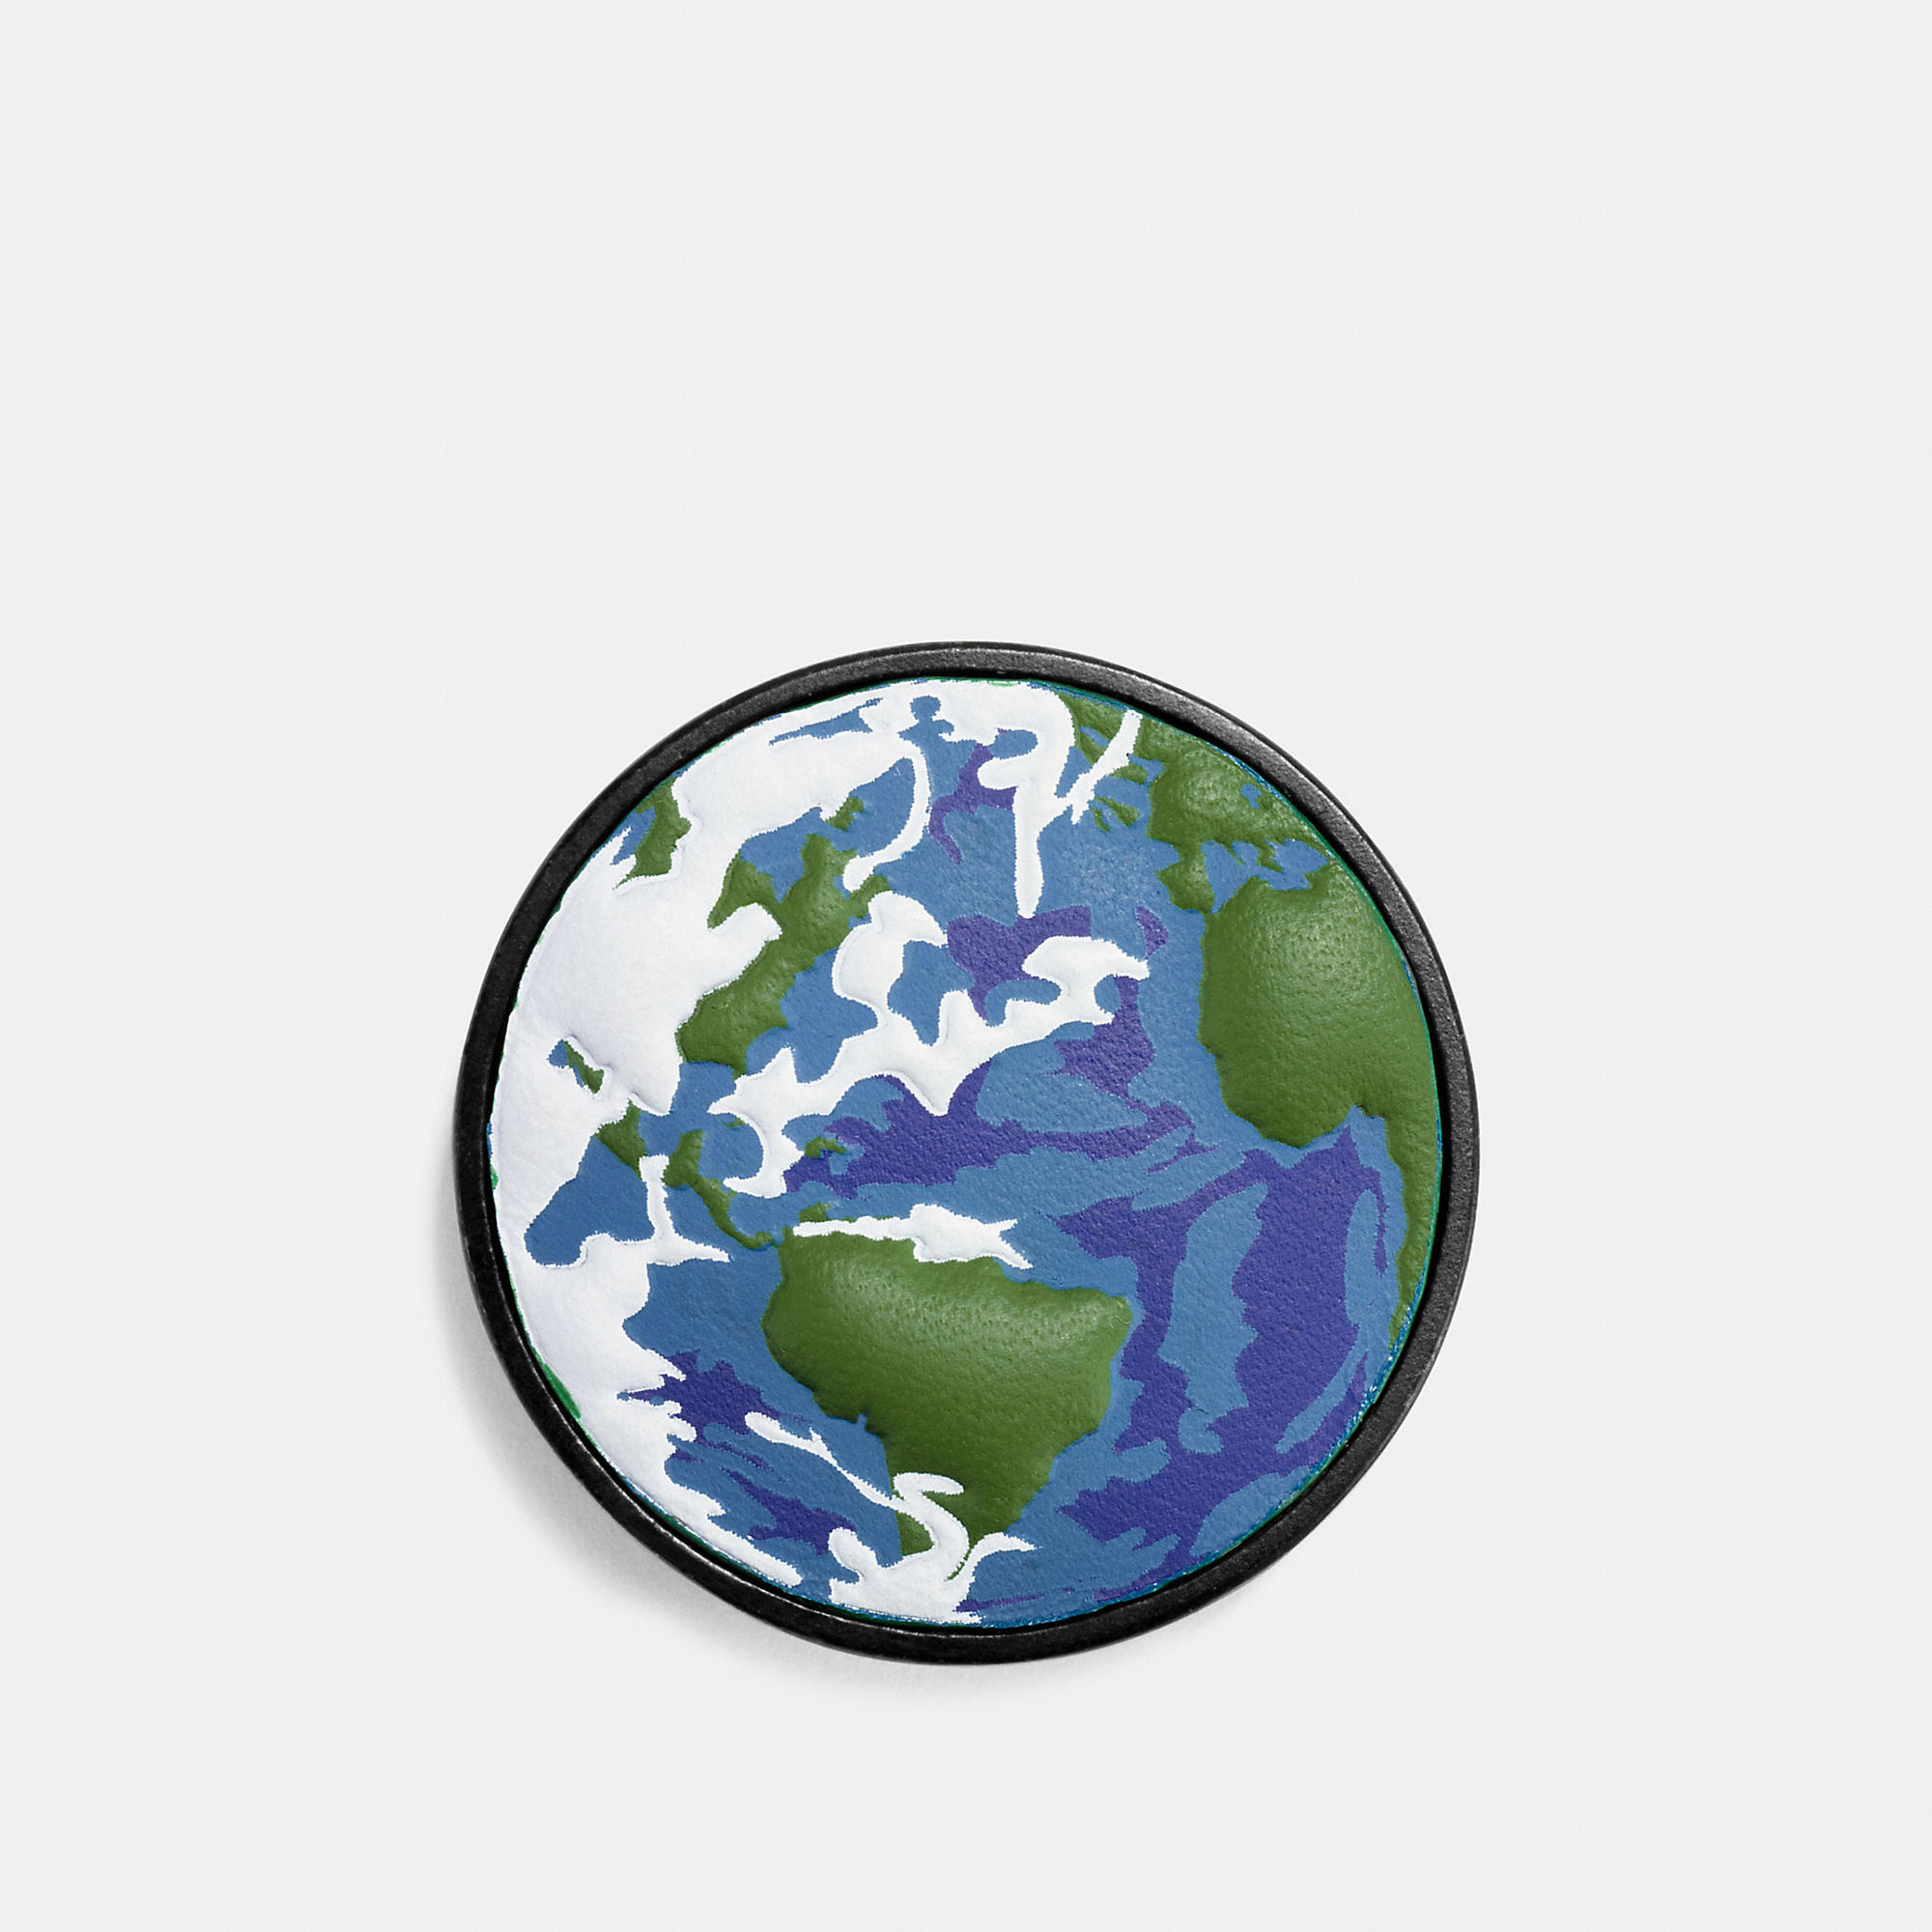 Coach Planet Earth Leather Pin